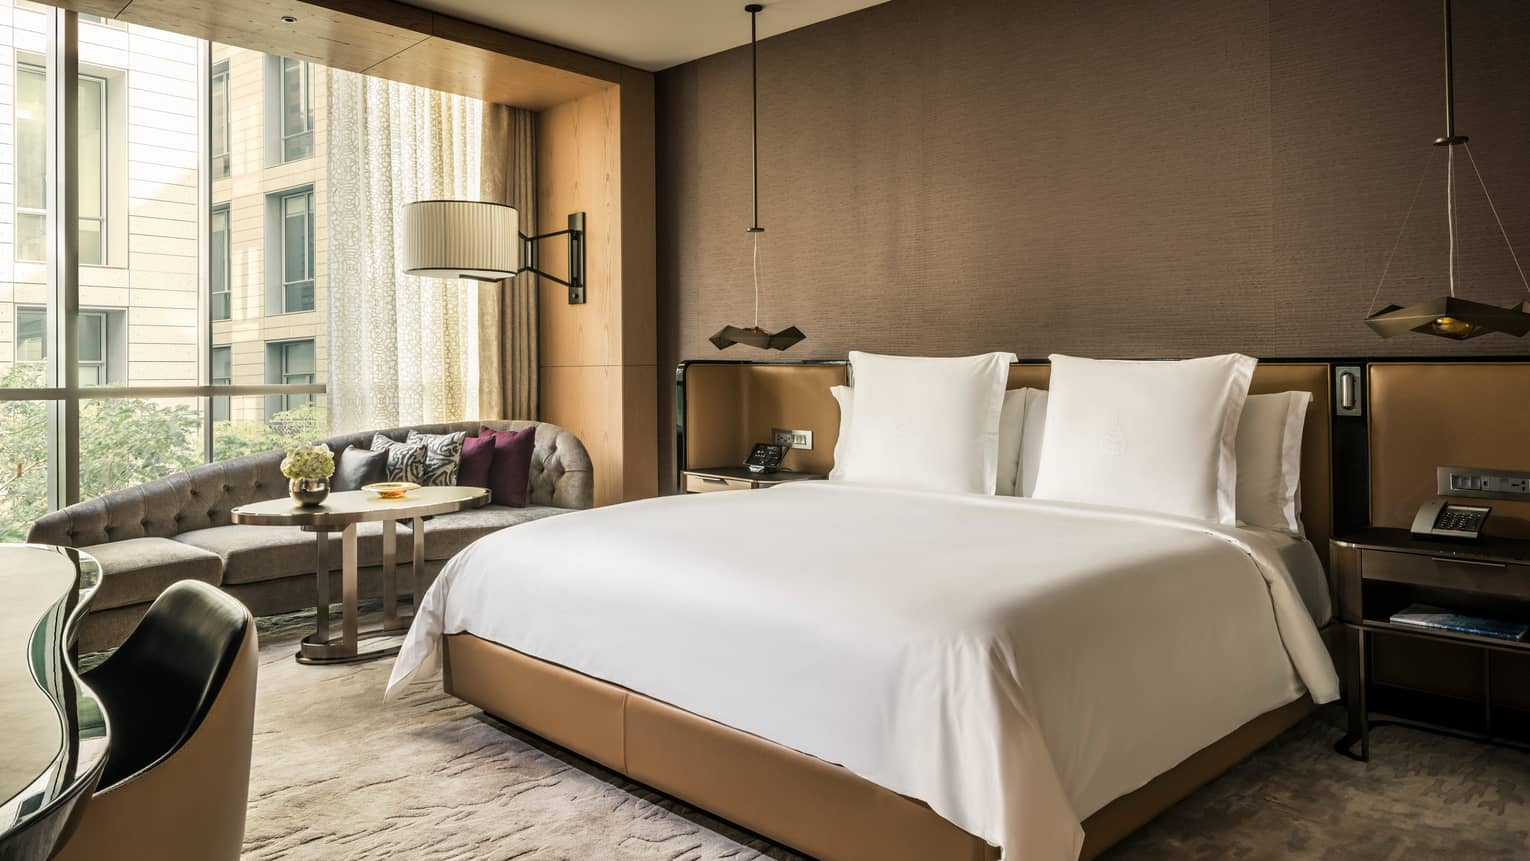 Deluxe Room hotel bed with padded headboard and nightstands, chaise under sunny window